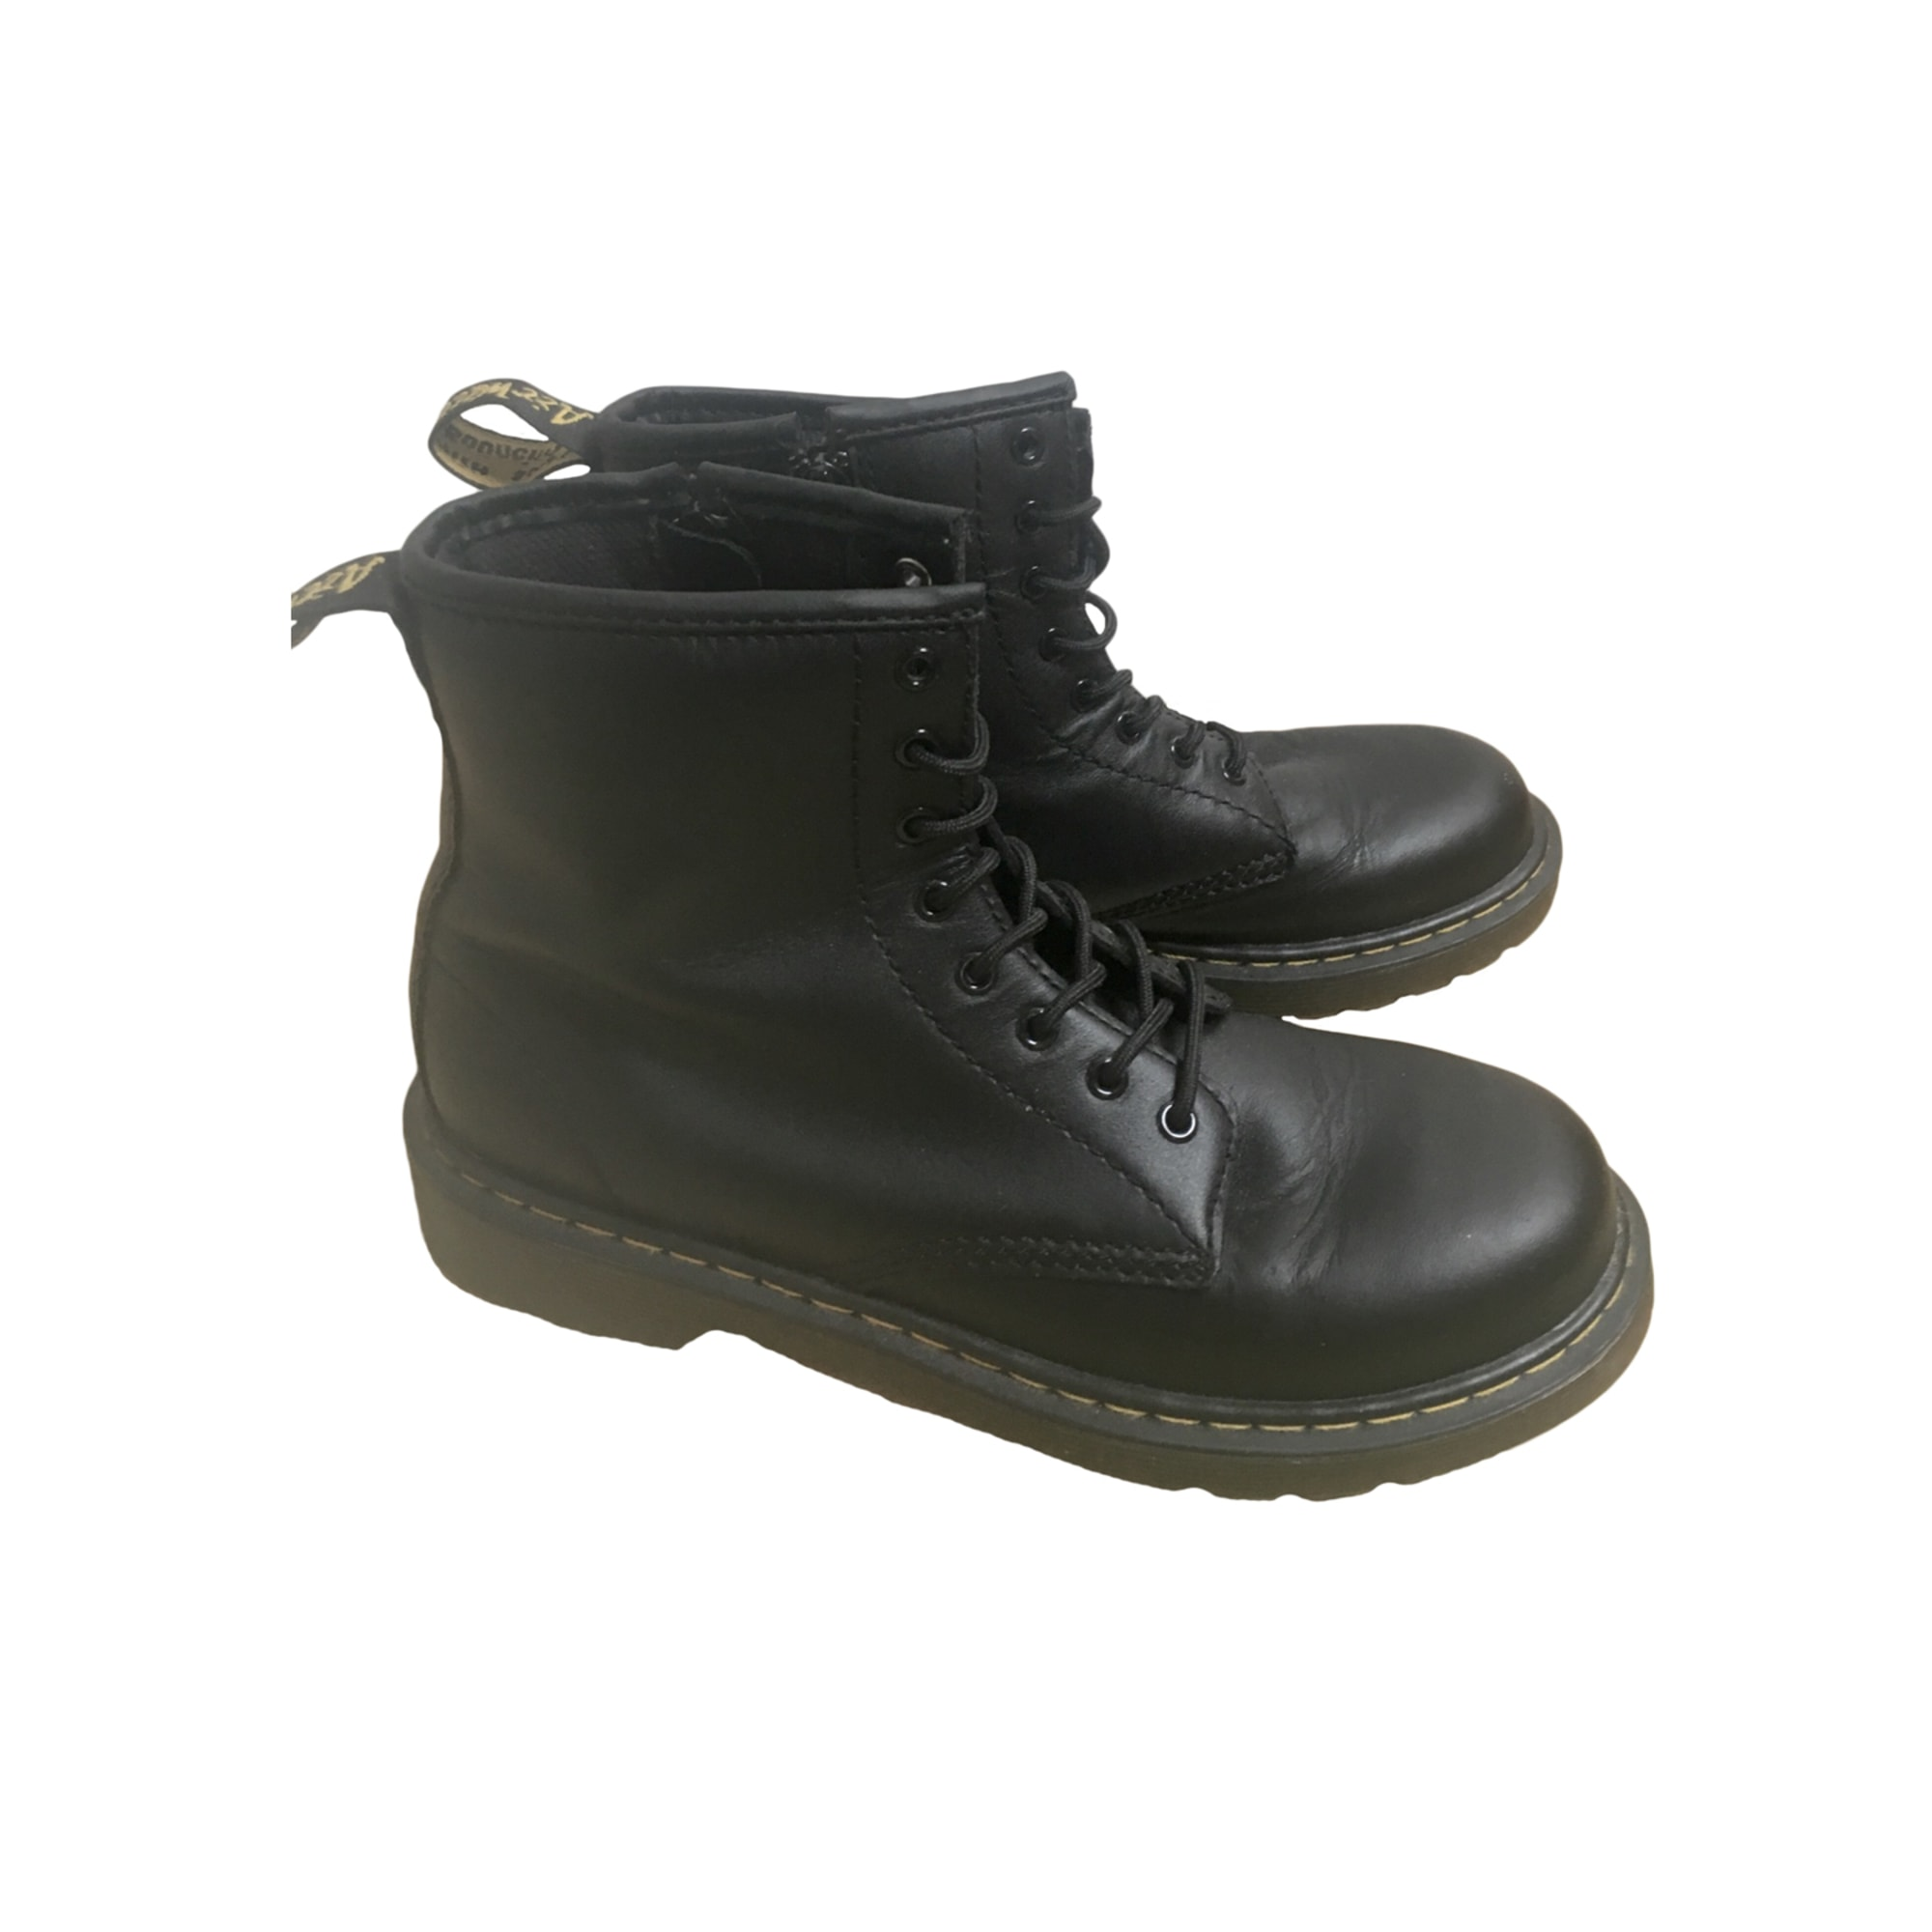 Bottines & low boots motards DR. MARTENS Noir